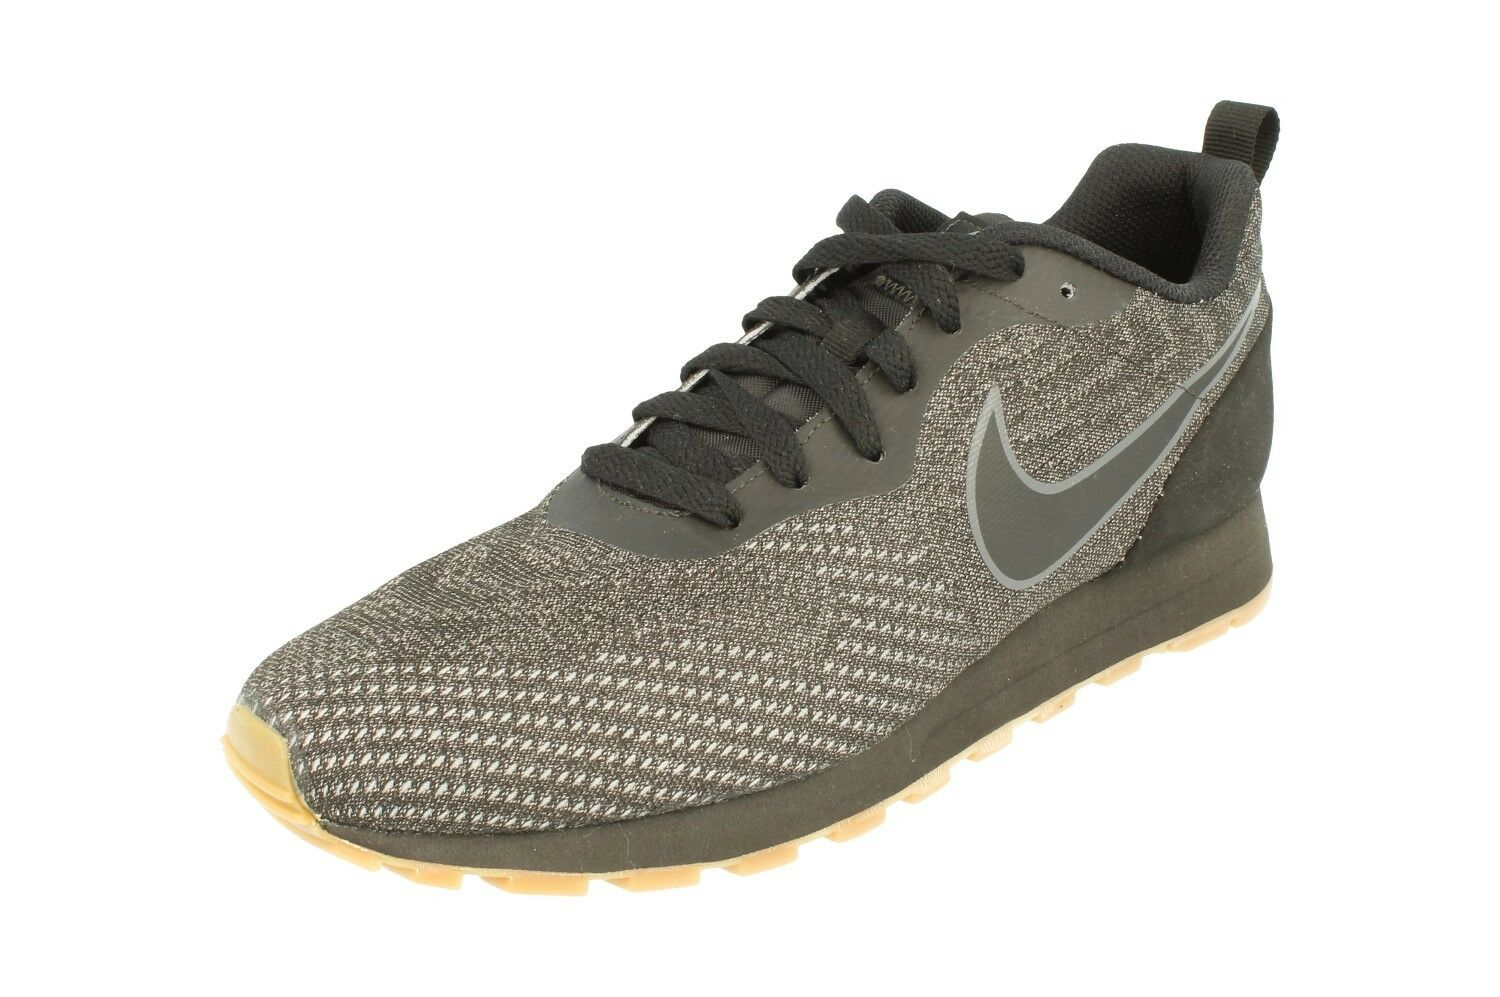 Nike Md Runner 2 Eng Mesh Mens Running Trainers 916774 Sneakers shoes 010